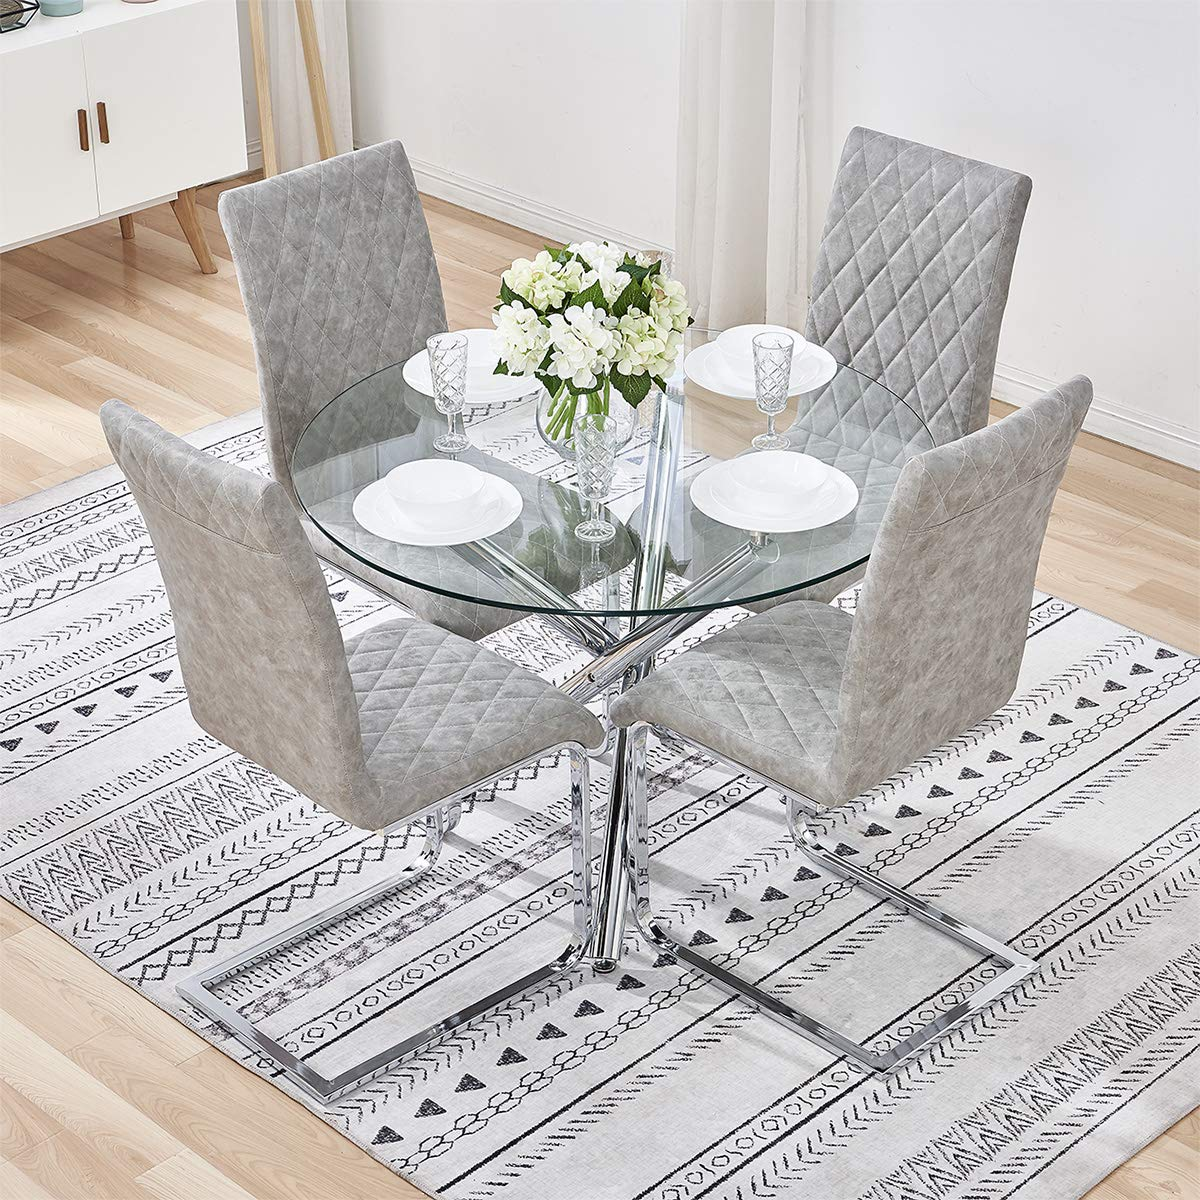 Awesome Gizza Transparent Round Glass Dining Table And 4 Distressed Leather Chairs Crisscrossing Legs Restaurant Kitchen Room Table Sets Furniture Table 4 Beutiful Home Inspiration Cosmmahrainfo